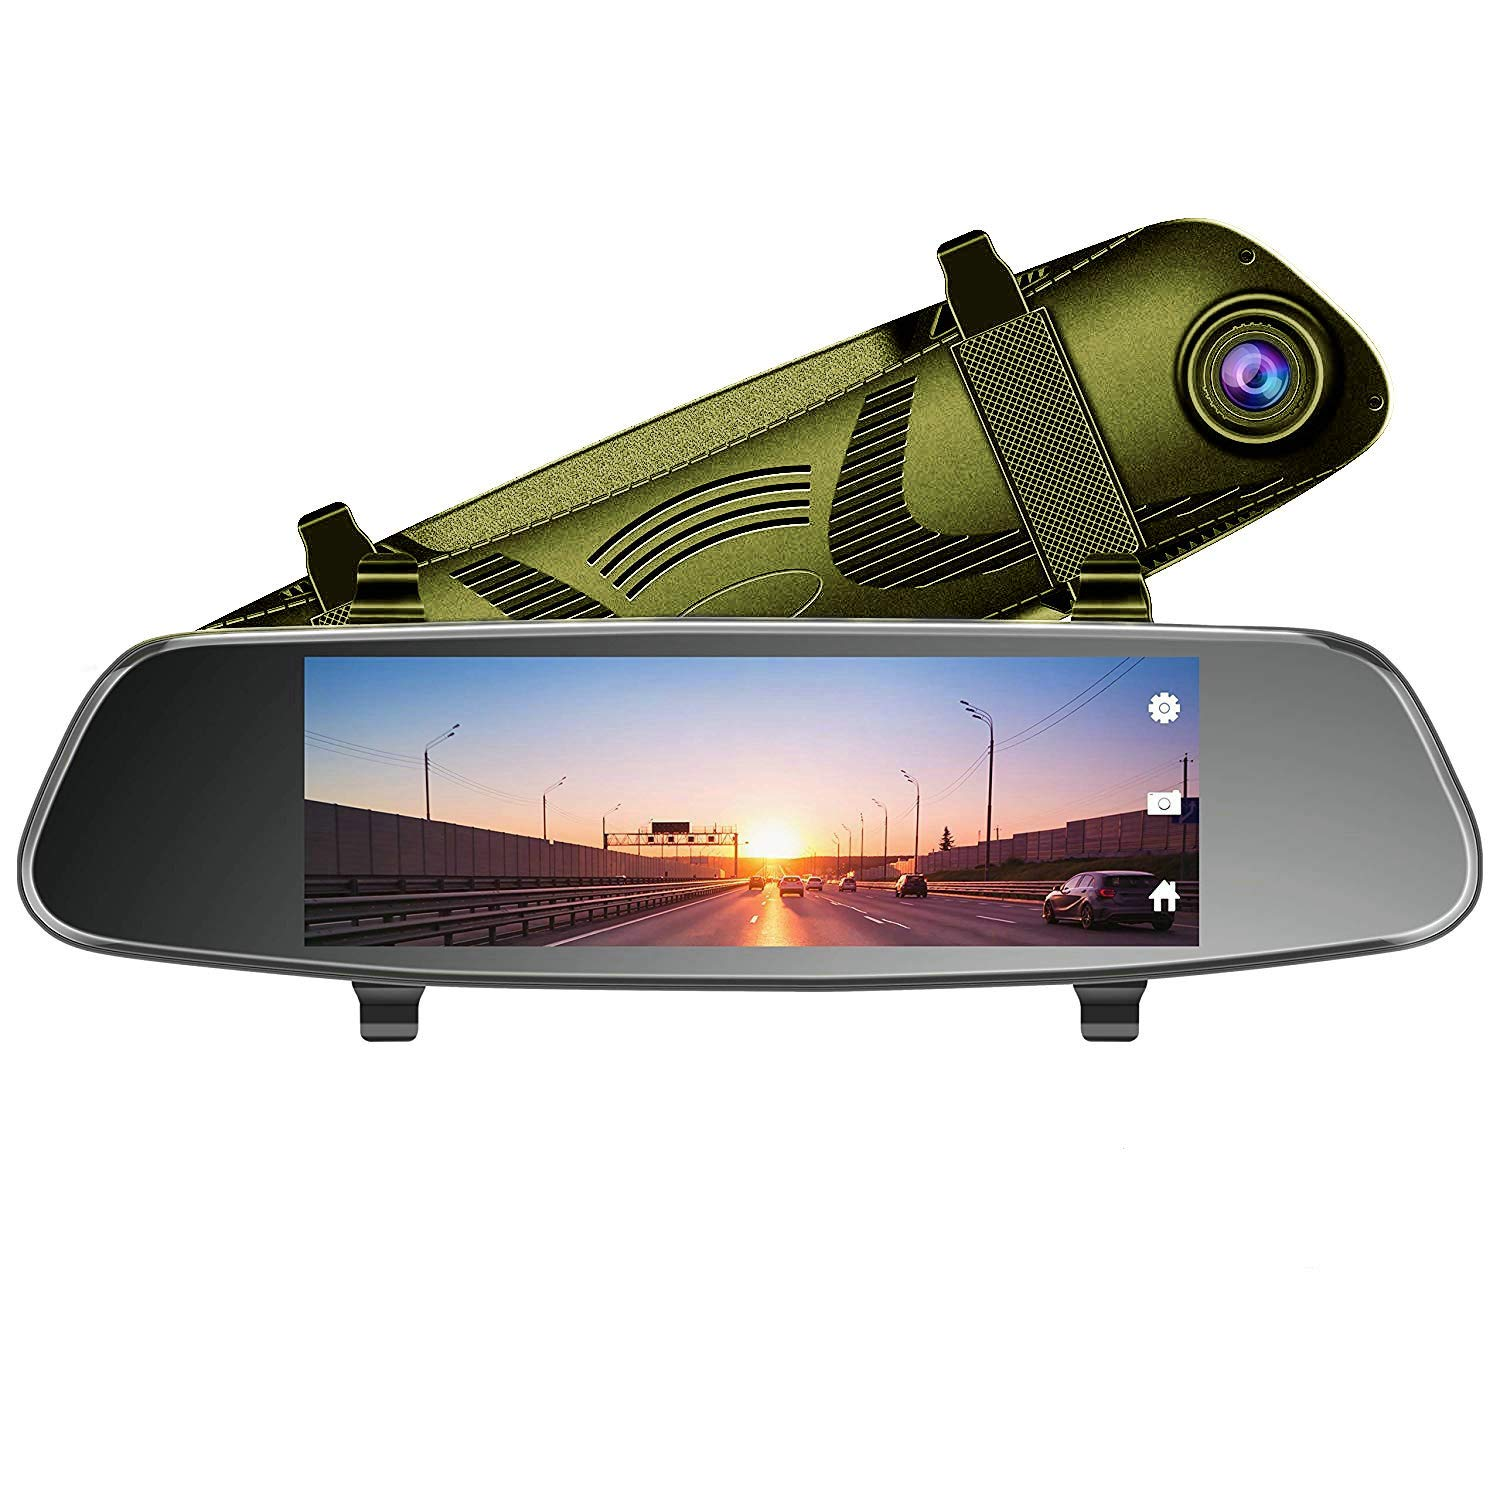 AUKEY Dash Cam Mirror 6.8'' LCD Touchscreen Car Camera with Backup Camera and Parking Mode 1080p 170° Front Camera and 720p 160° Water-Resistant Rear Camera-Green